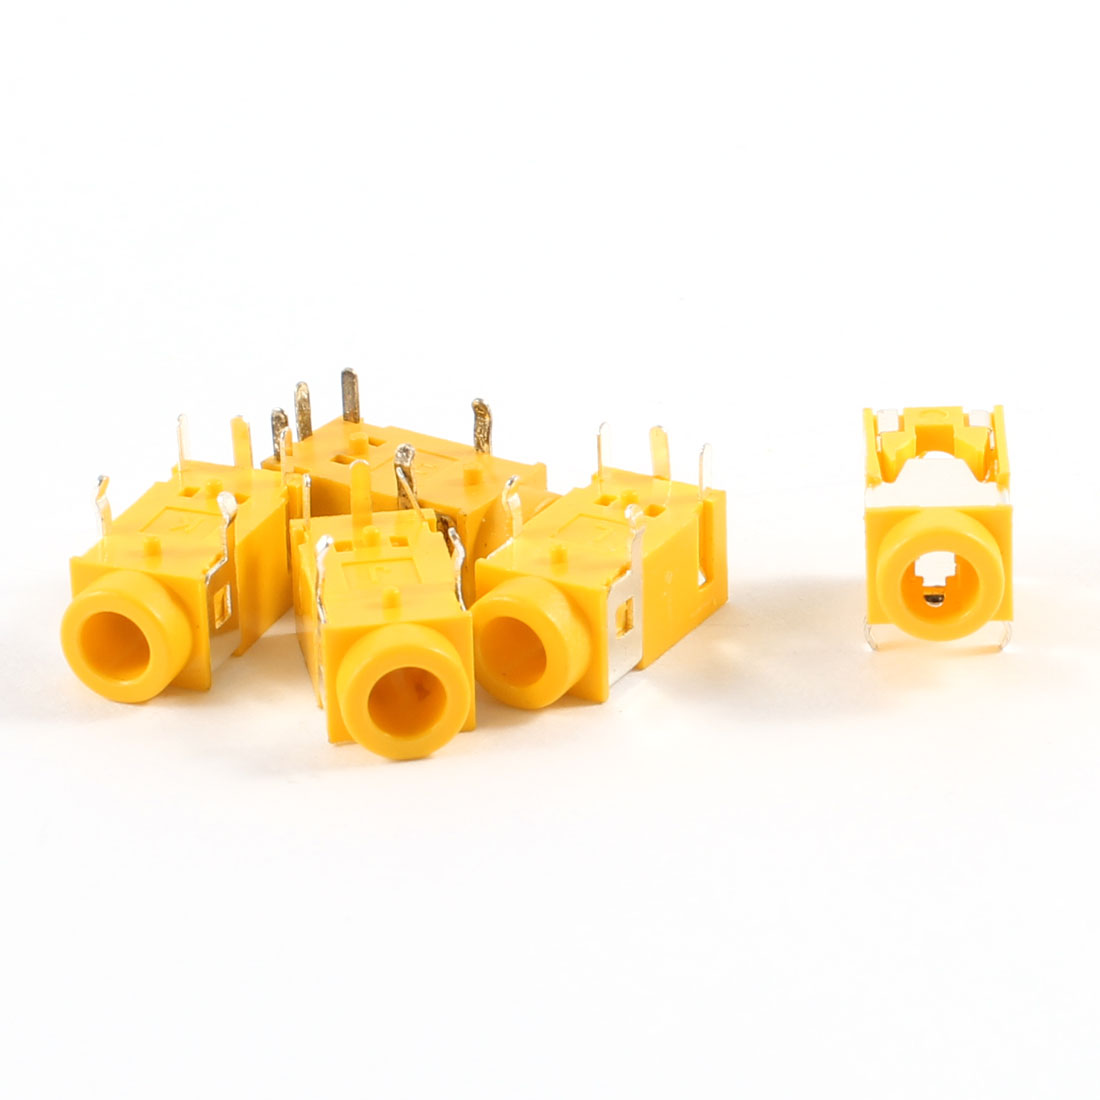 5 Pcs 5 Pin Terminals Female 3.5mm Audio Jack Socket Connector Yellow